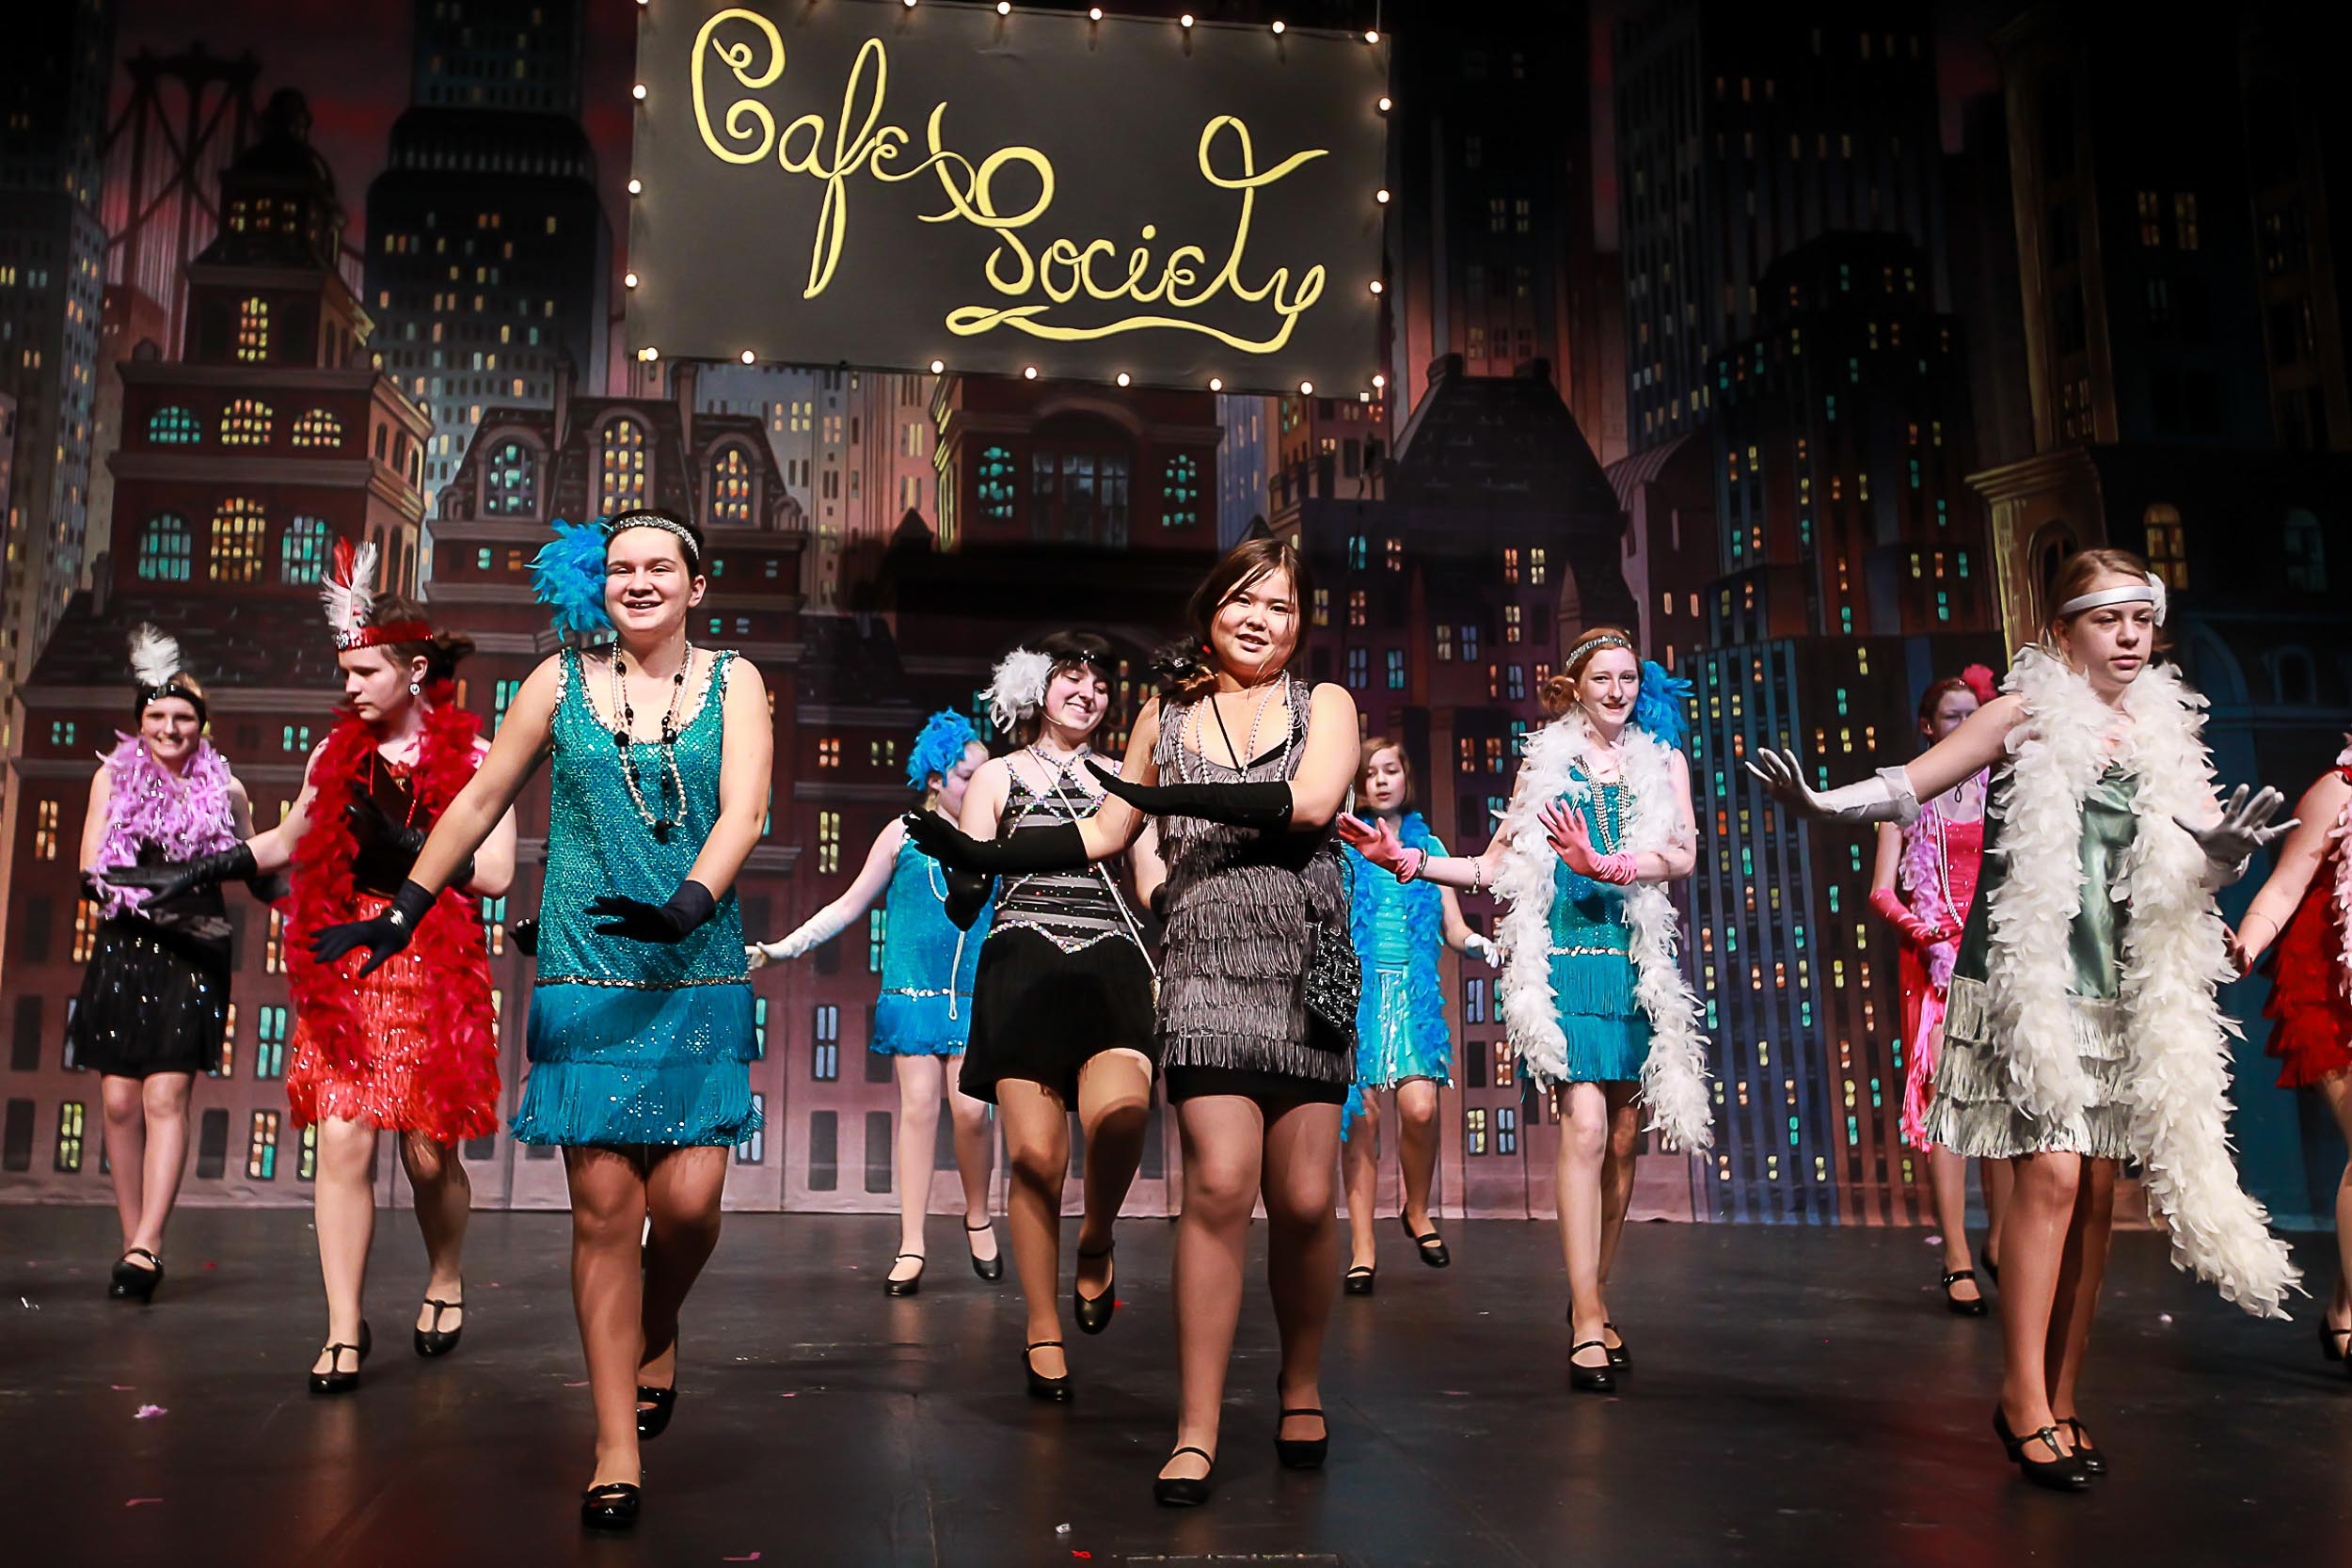 HPMS - Guys and Dolls, 2014